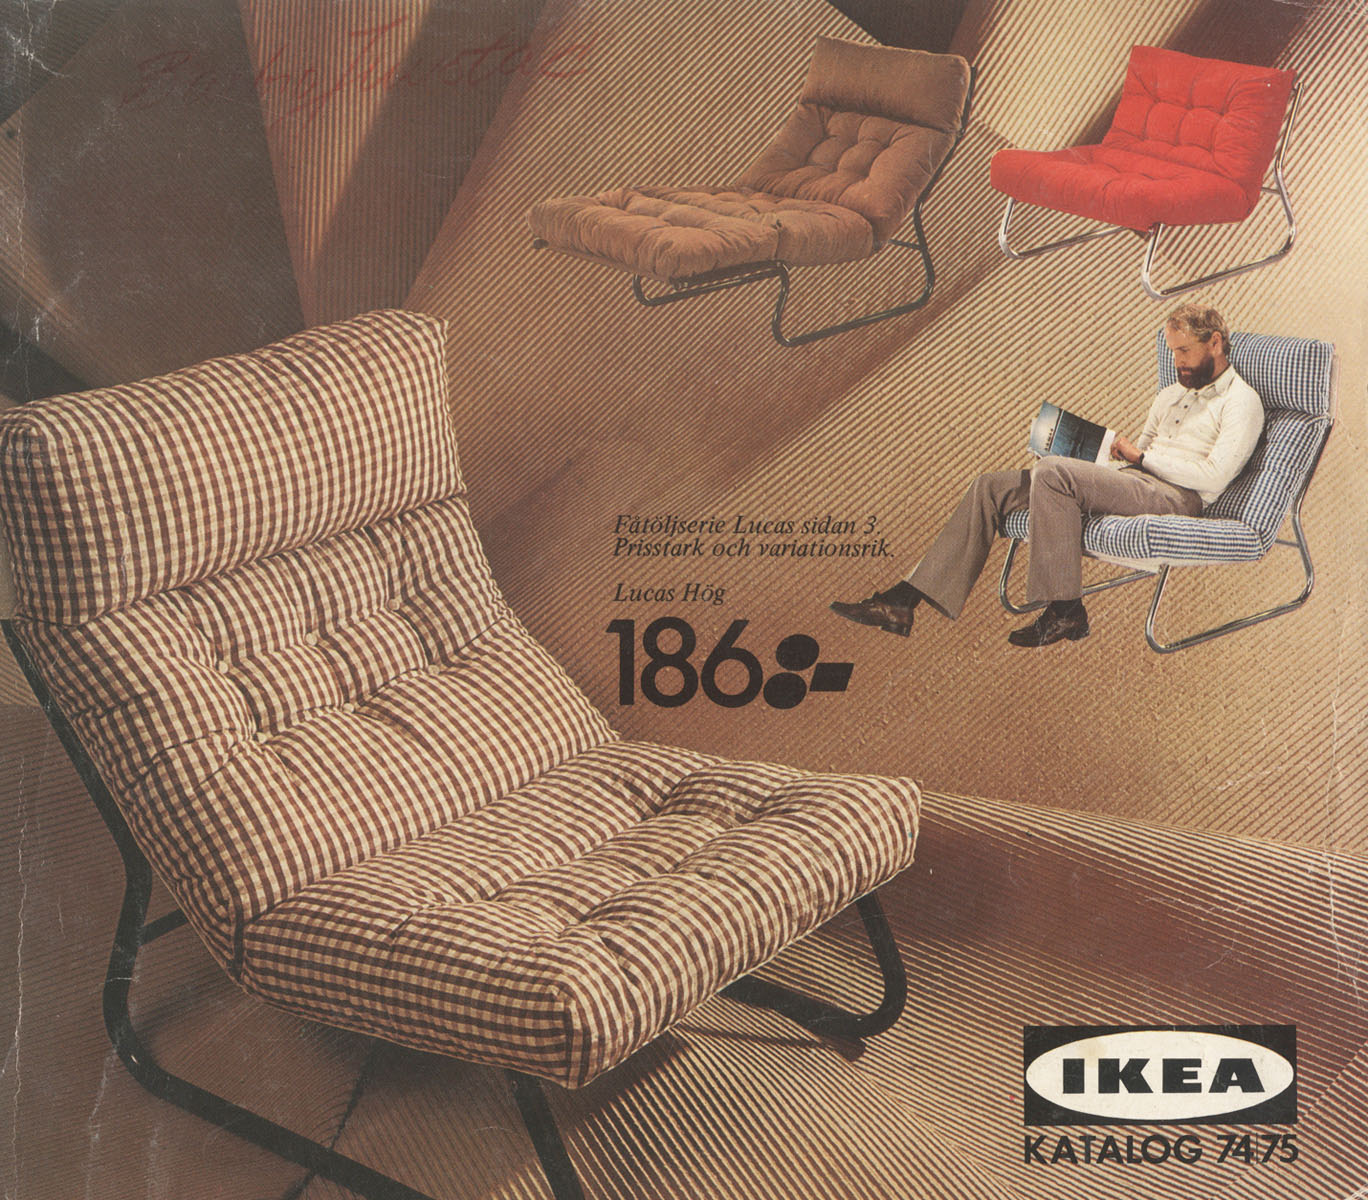 Ikea 1975 Catalog Interior Design Ideas